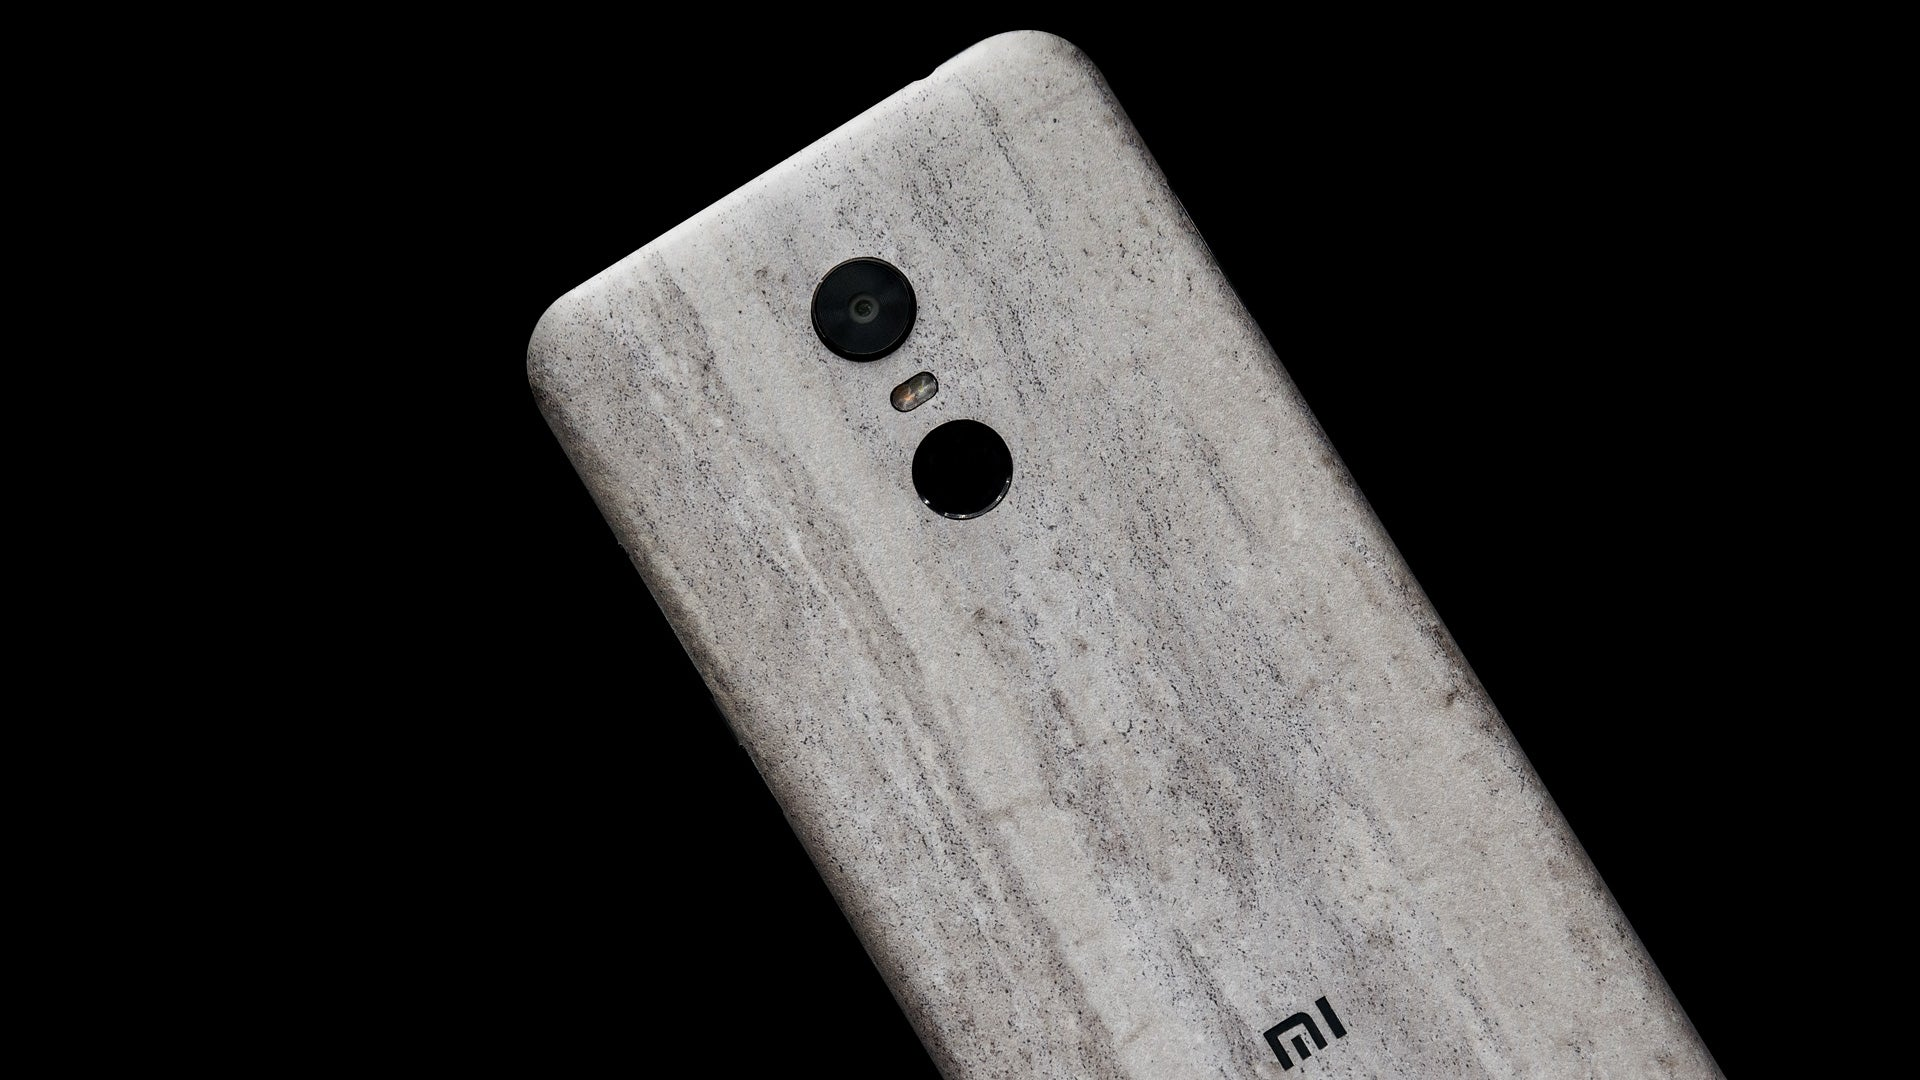 Xiaomi Redmi Note 5 Skins Wraps Decals Capes India Stiker Carbon Transparan Samsung Give Your A Complete Makeover With Our Premium Select From Any Of Textures And Colors Then The Coverage Style You Would Like